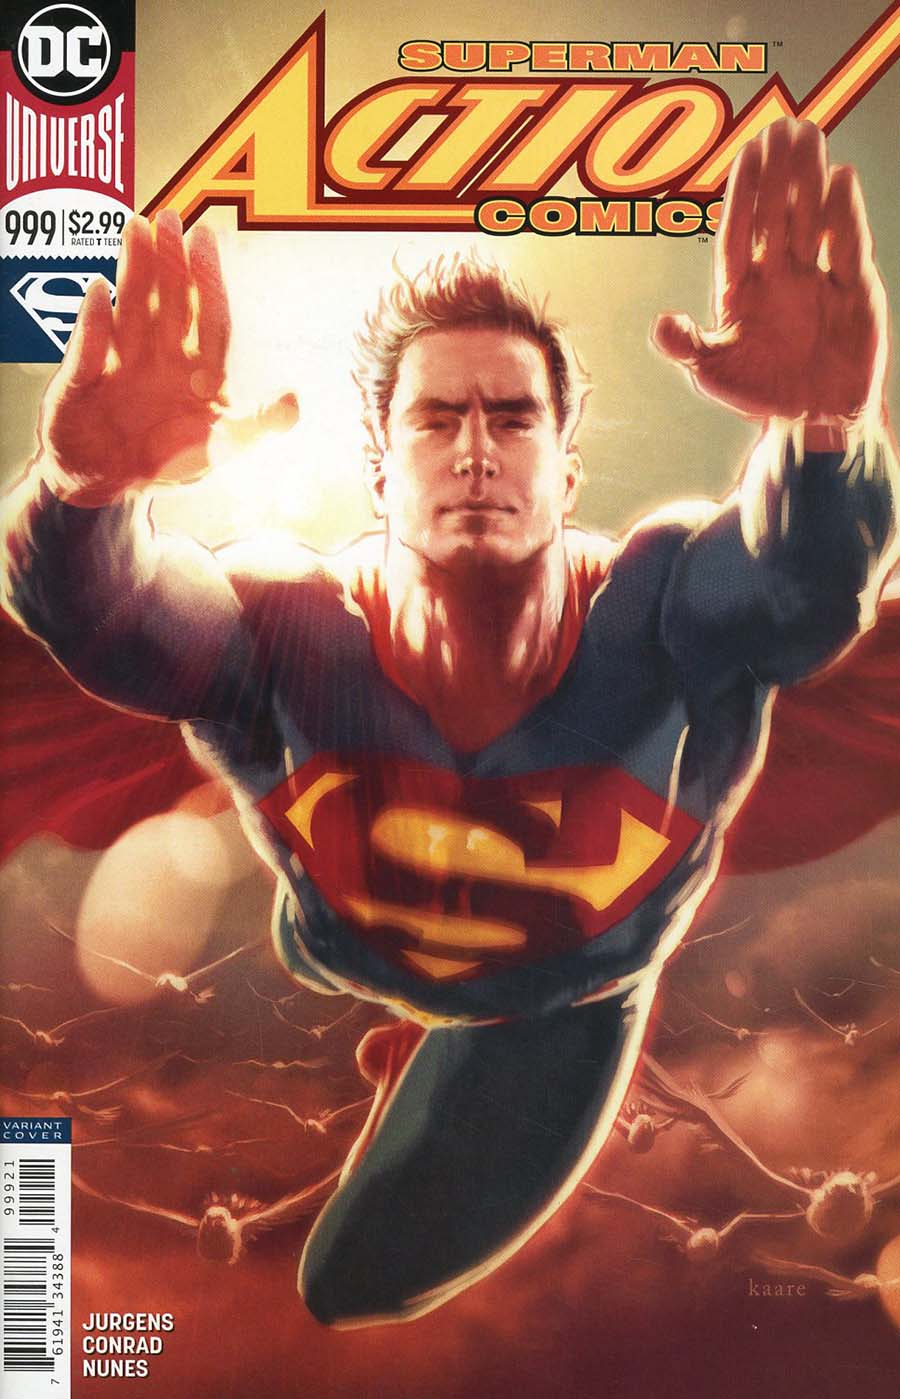 Action Comics Vol 2 #999 Cover B Variant Kaare Andrews Cover